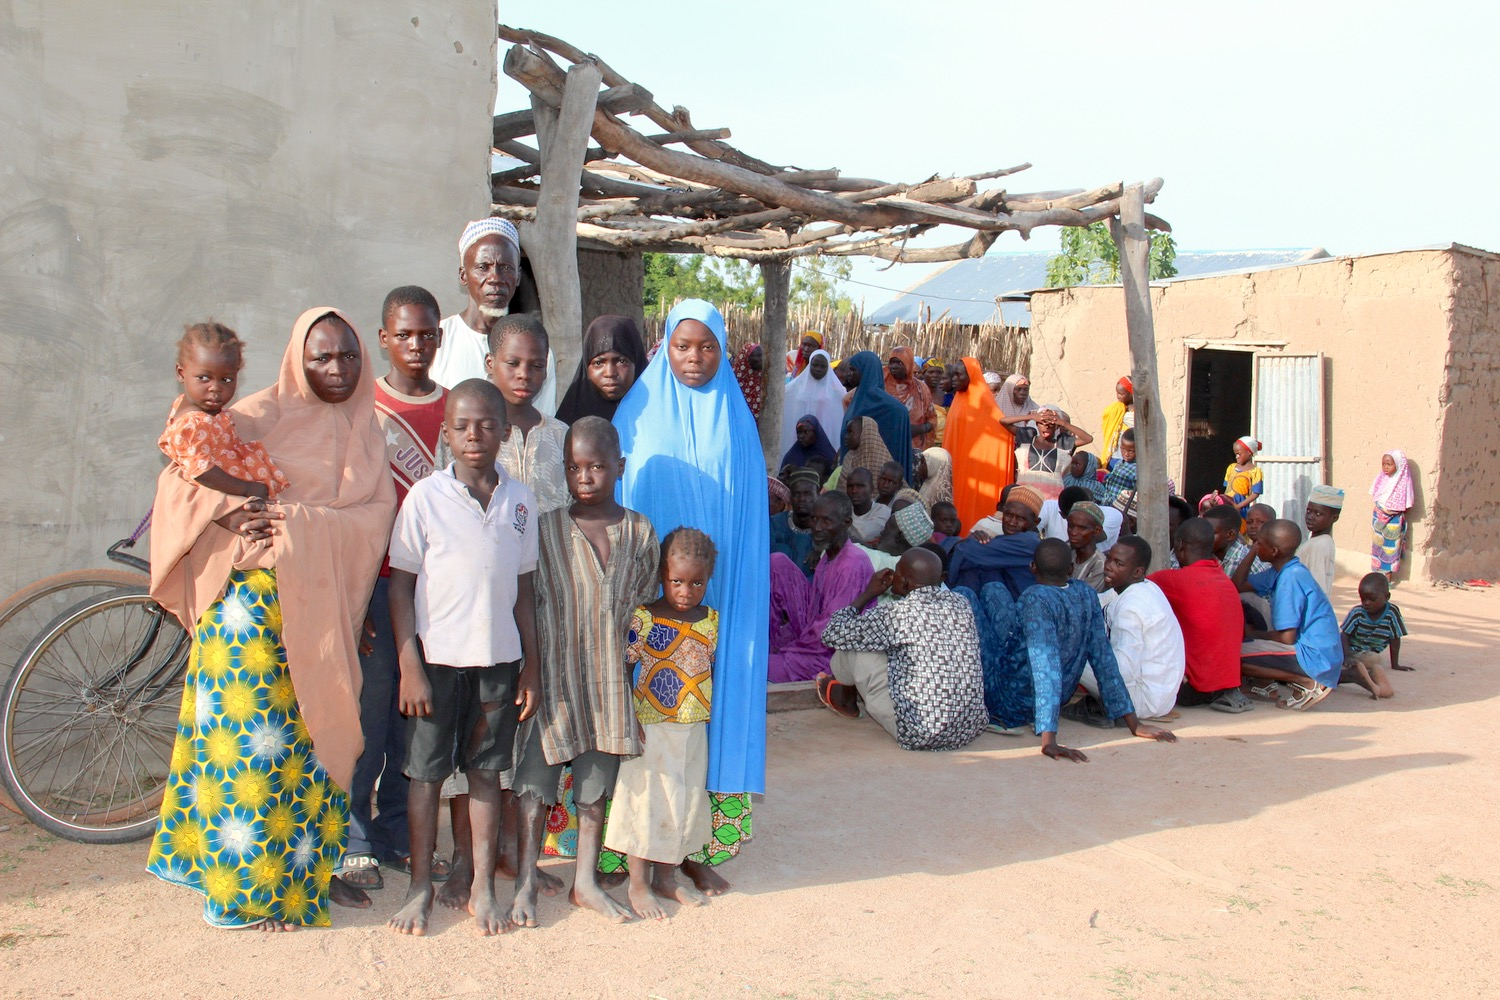 Finding shelter with fellow Nigerians